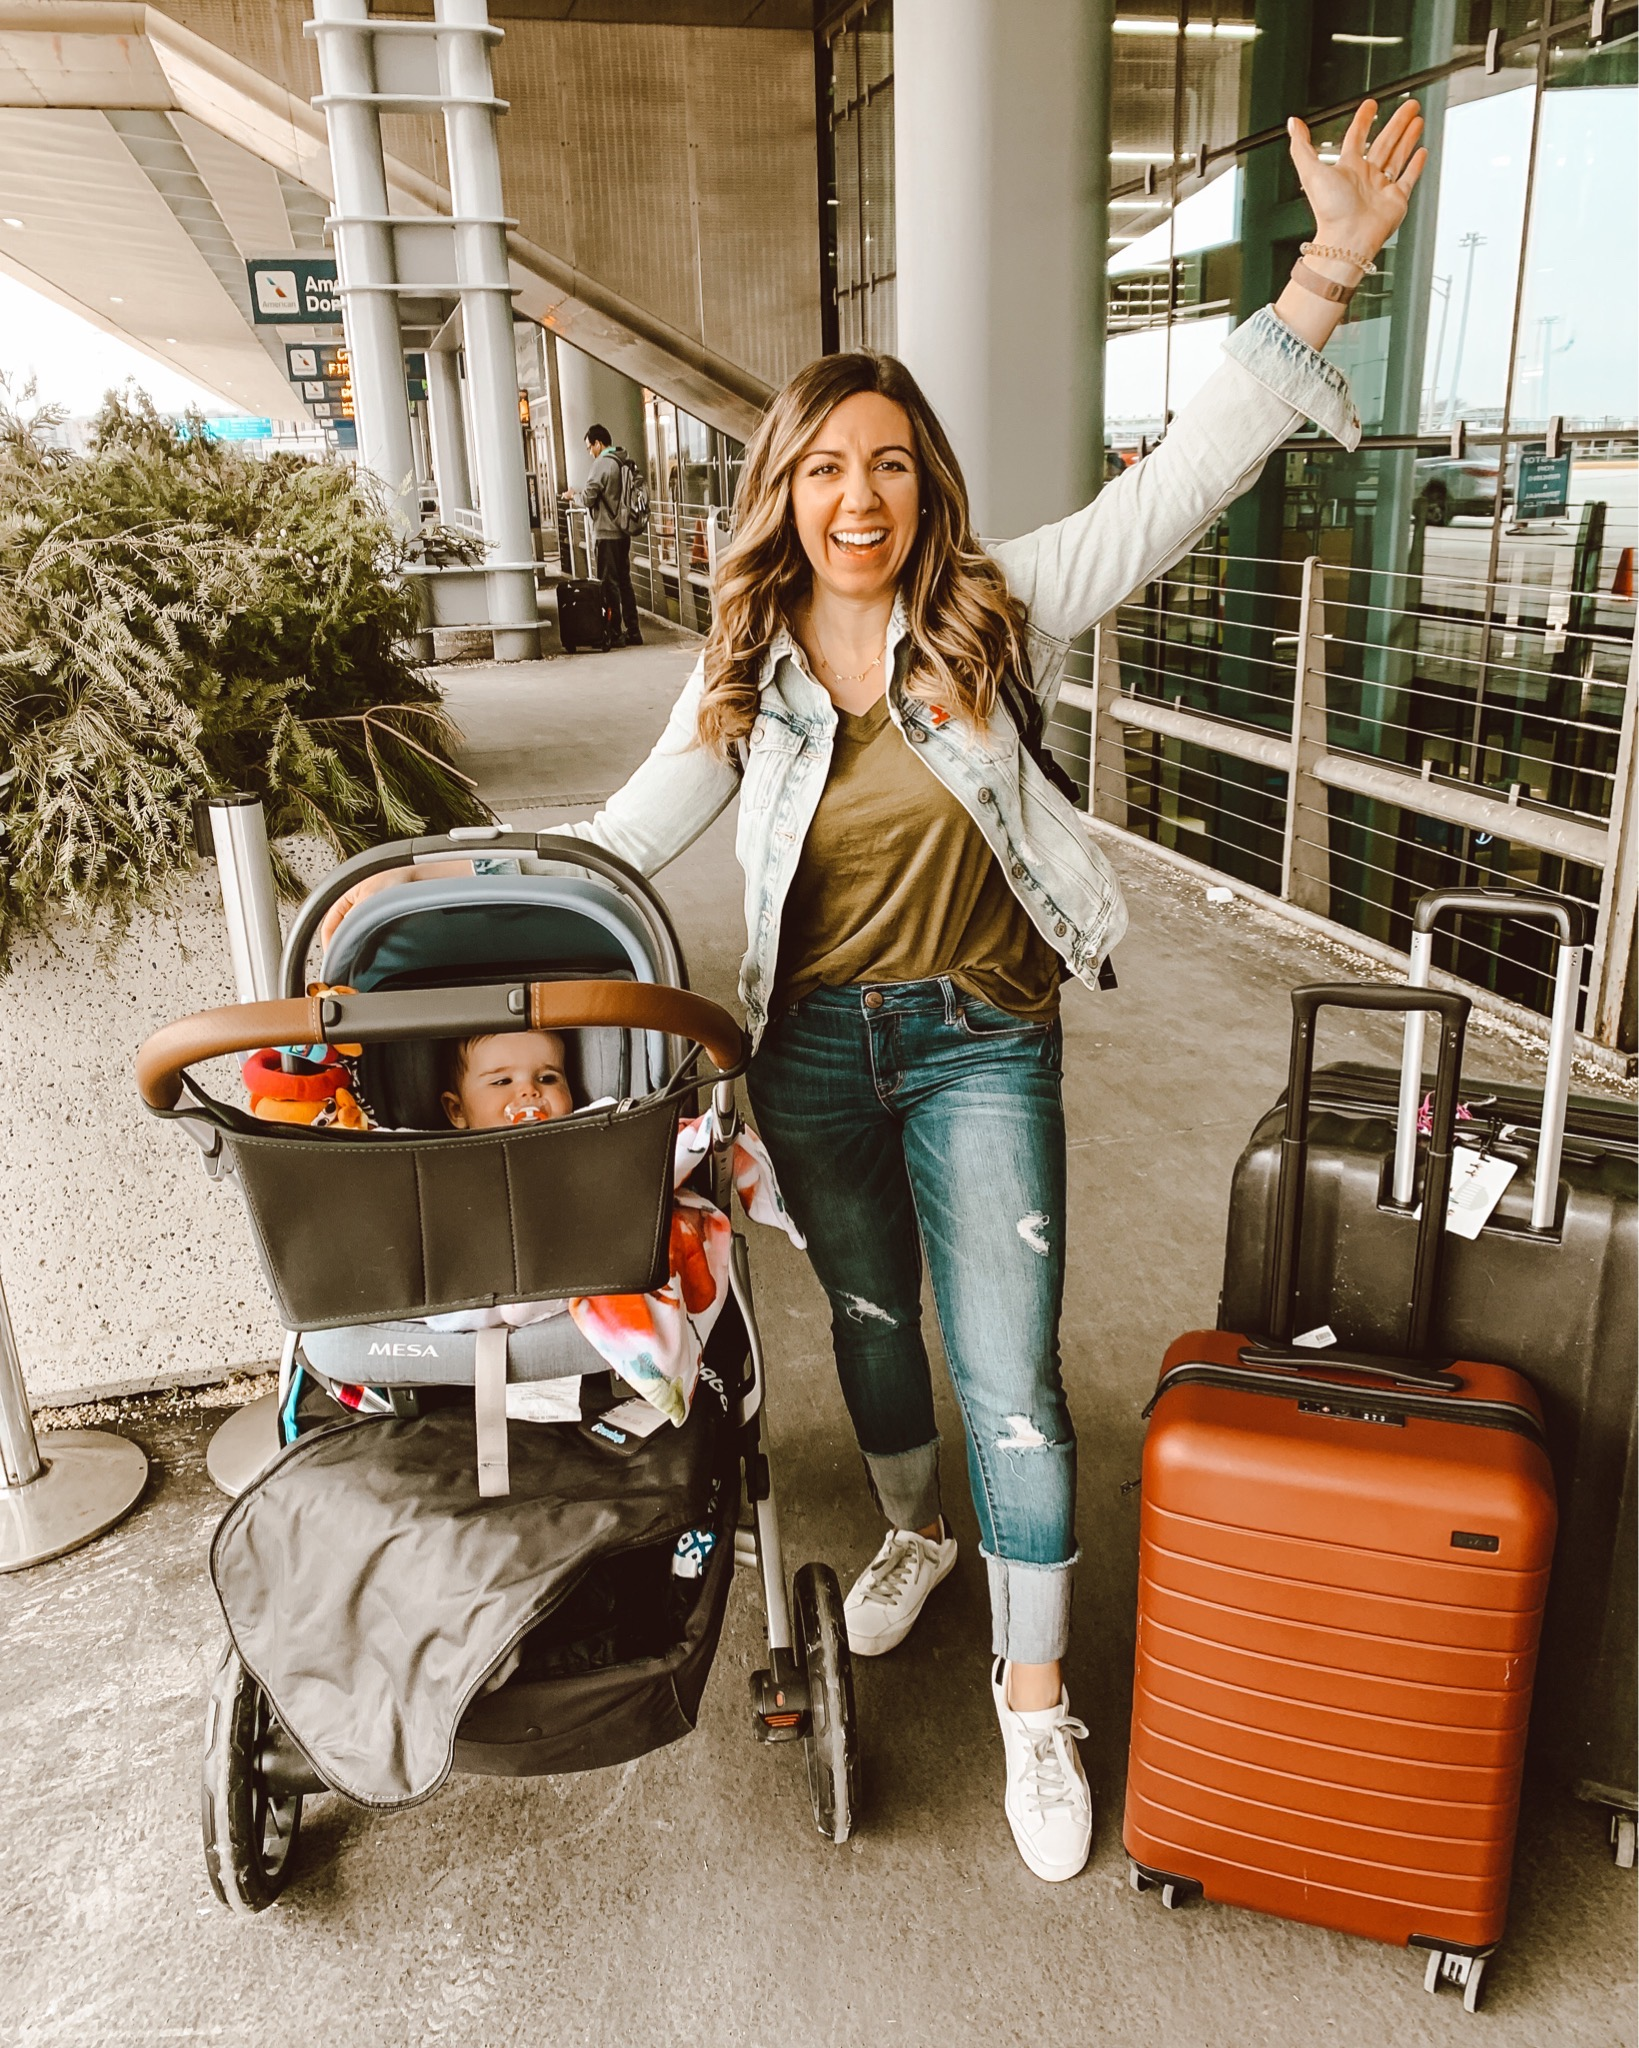 Shopbop Sale by popular Chicago fashion blog, Glass of Glam: image of a woman standing at an airport terminal with her luggage and her baby in a stroller.